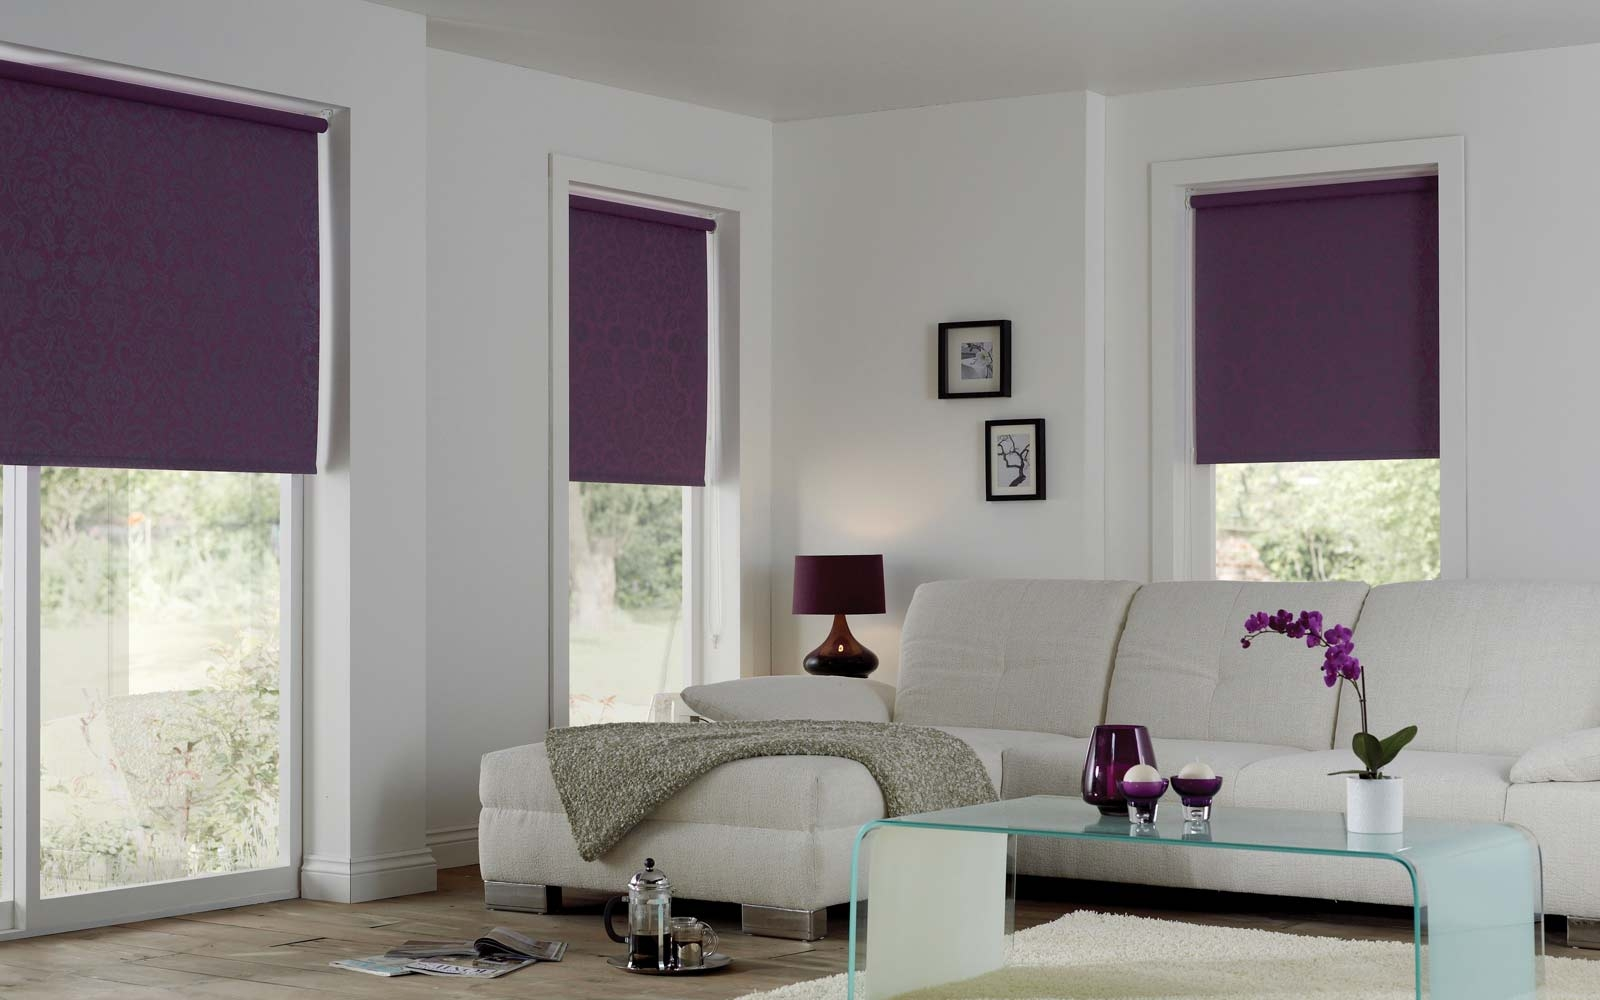 Blackout Blinds Surrey Blinds Shutters For Blackout Roman Blind (Image 5 of 15)